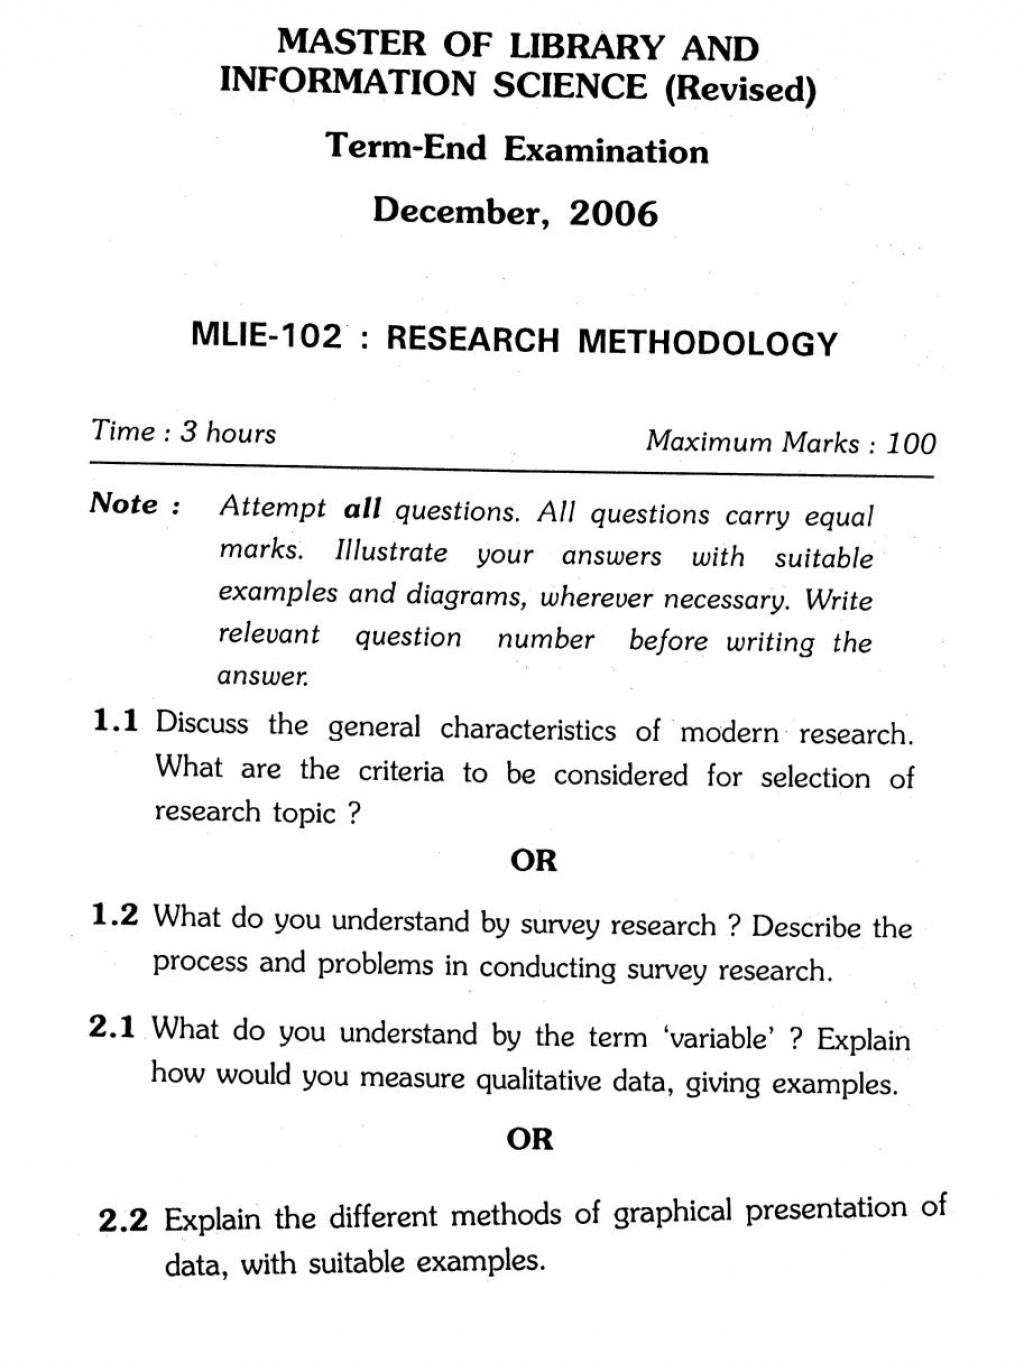 008 Research Paper Methodology In Ignou Master Of Library And Information Science Previous Years Question Papers Incredible About Bullying Teenage Pregnancy Example Engineering Large